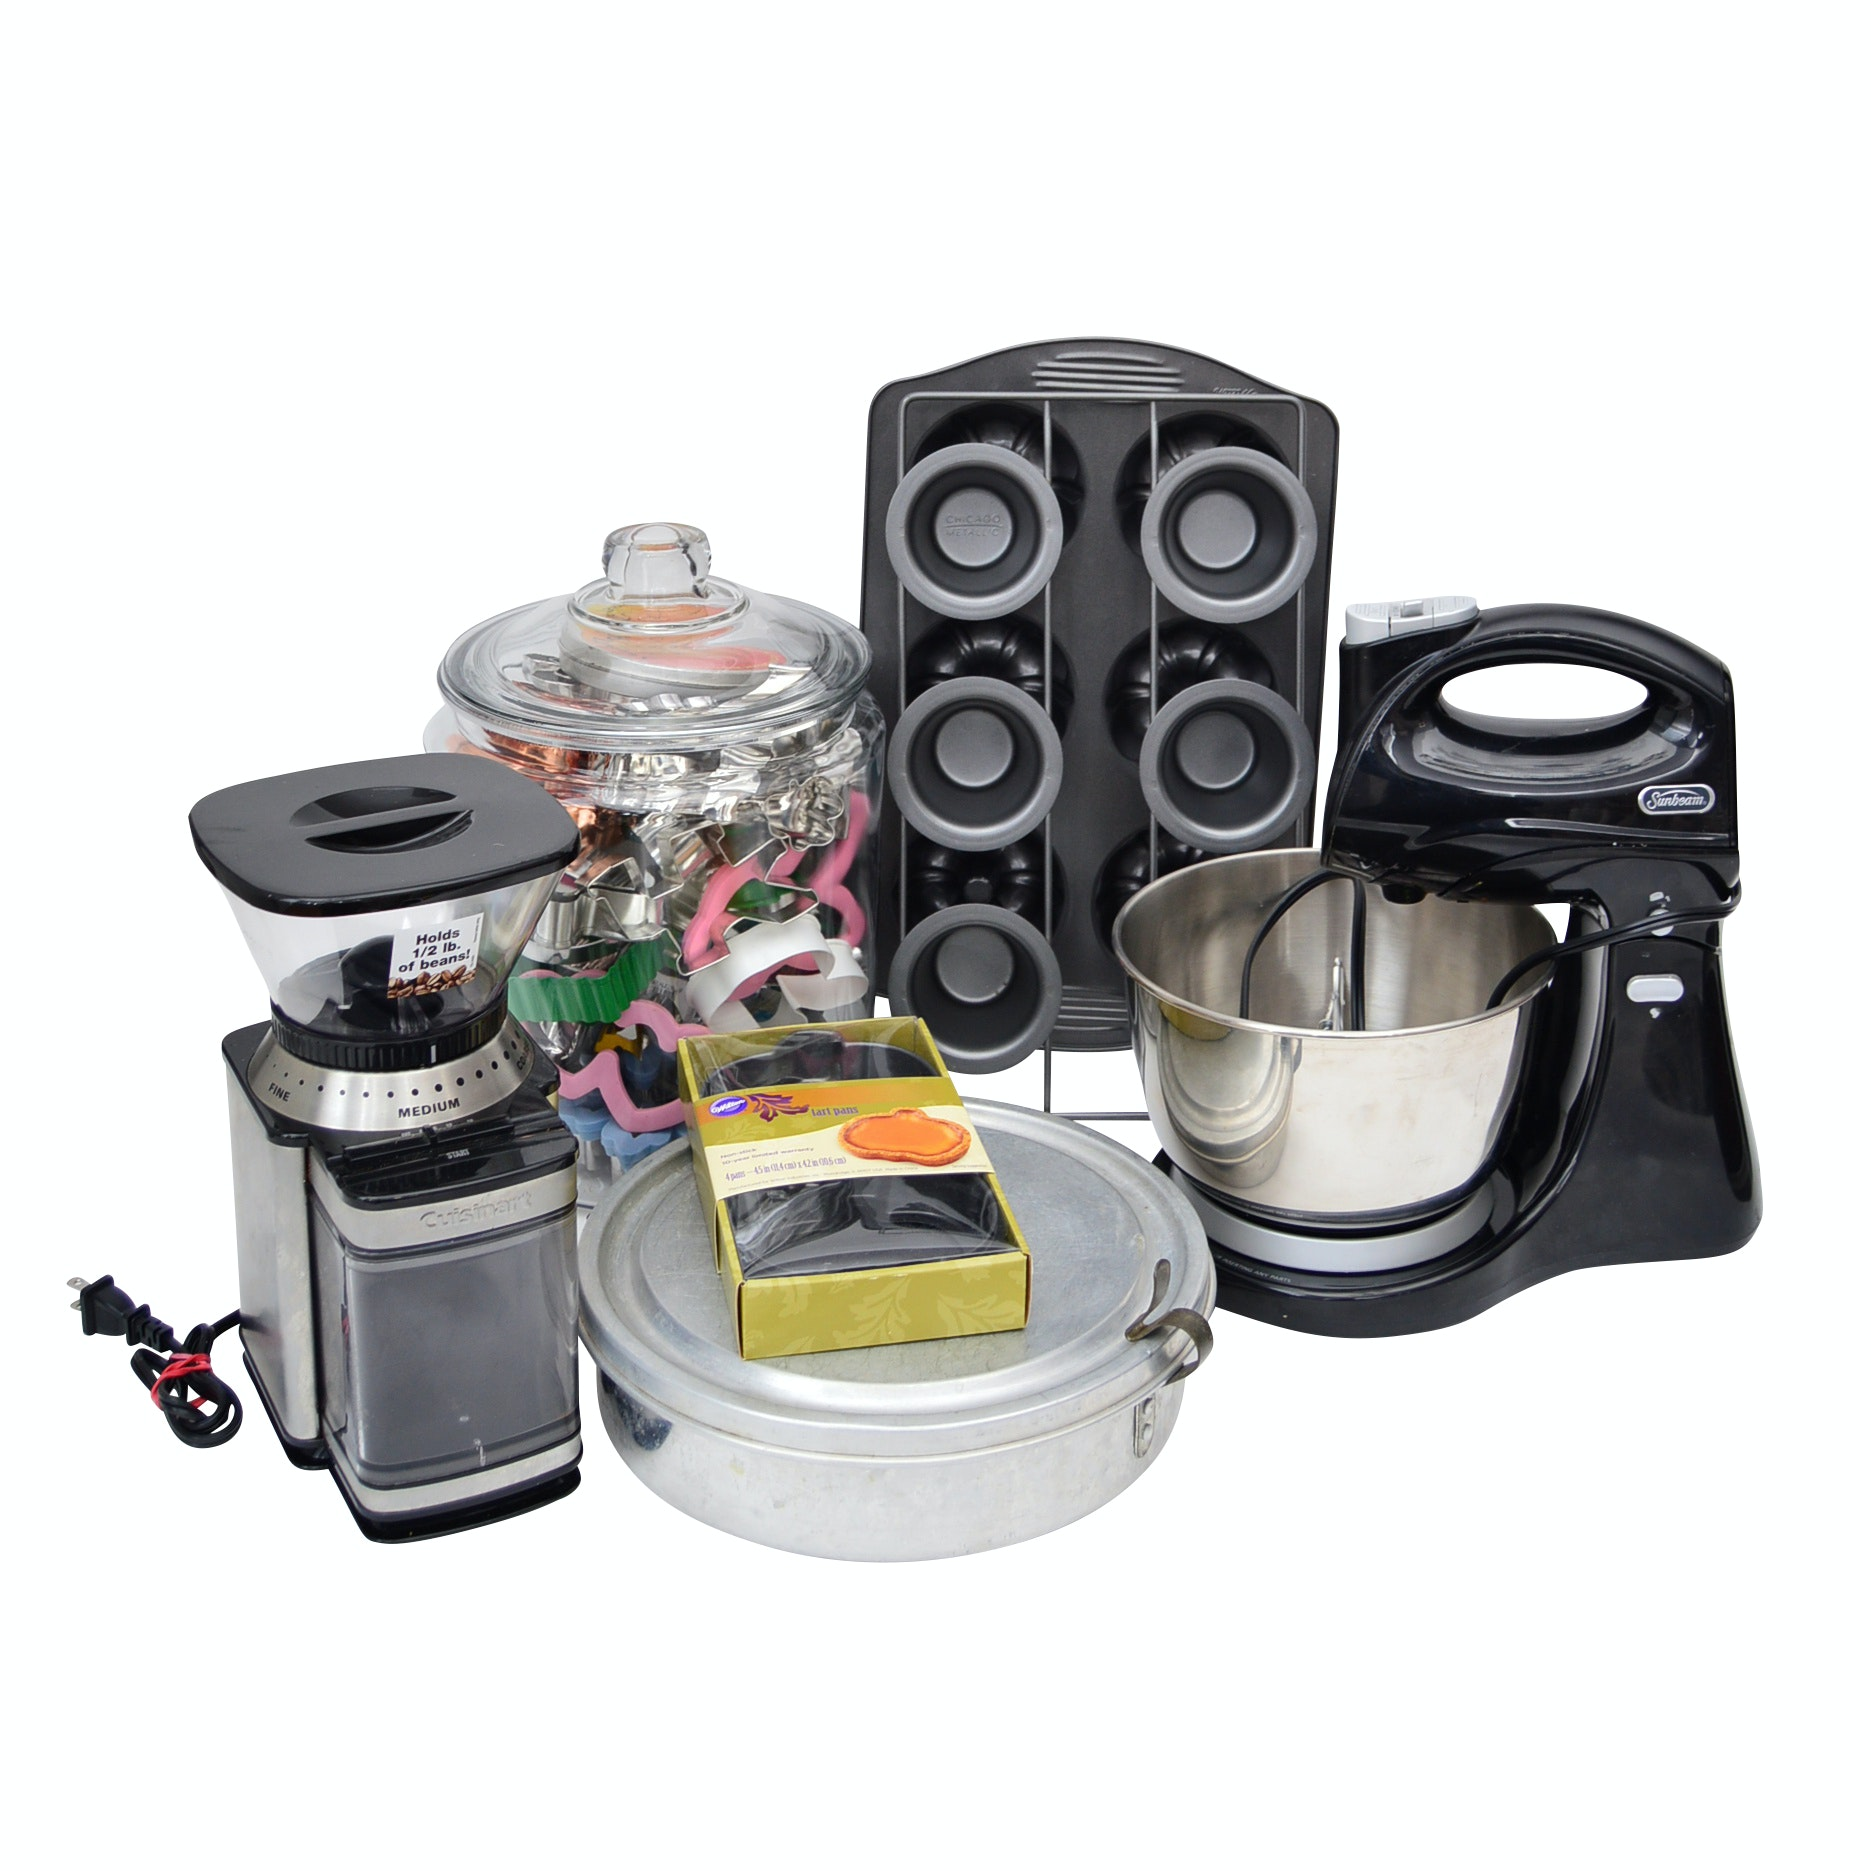 Kitchen Appliances and Bakeware with Cuisinart